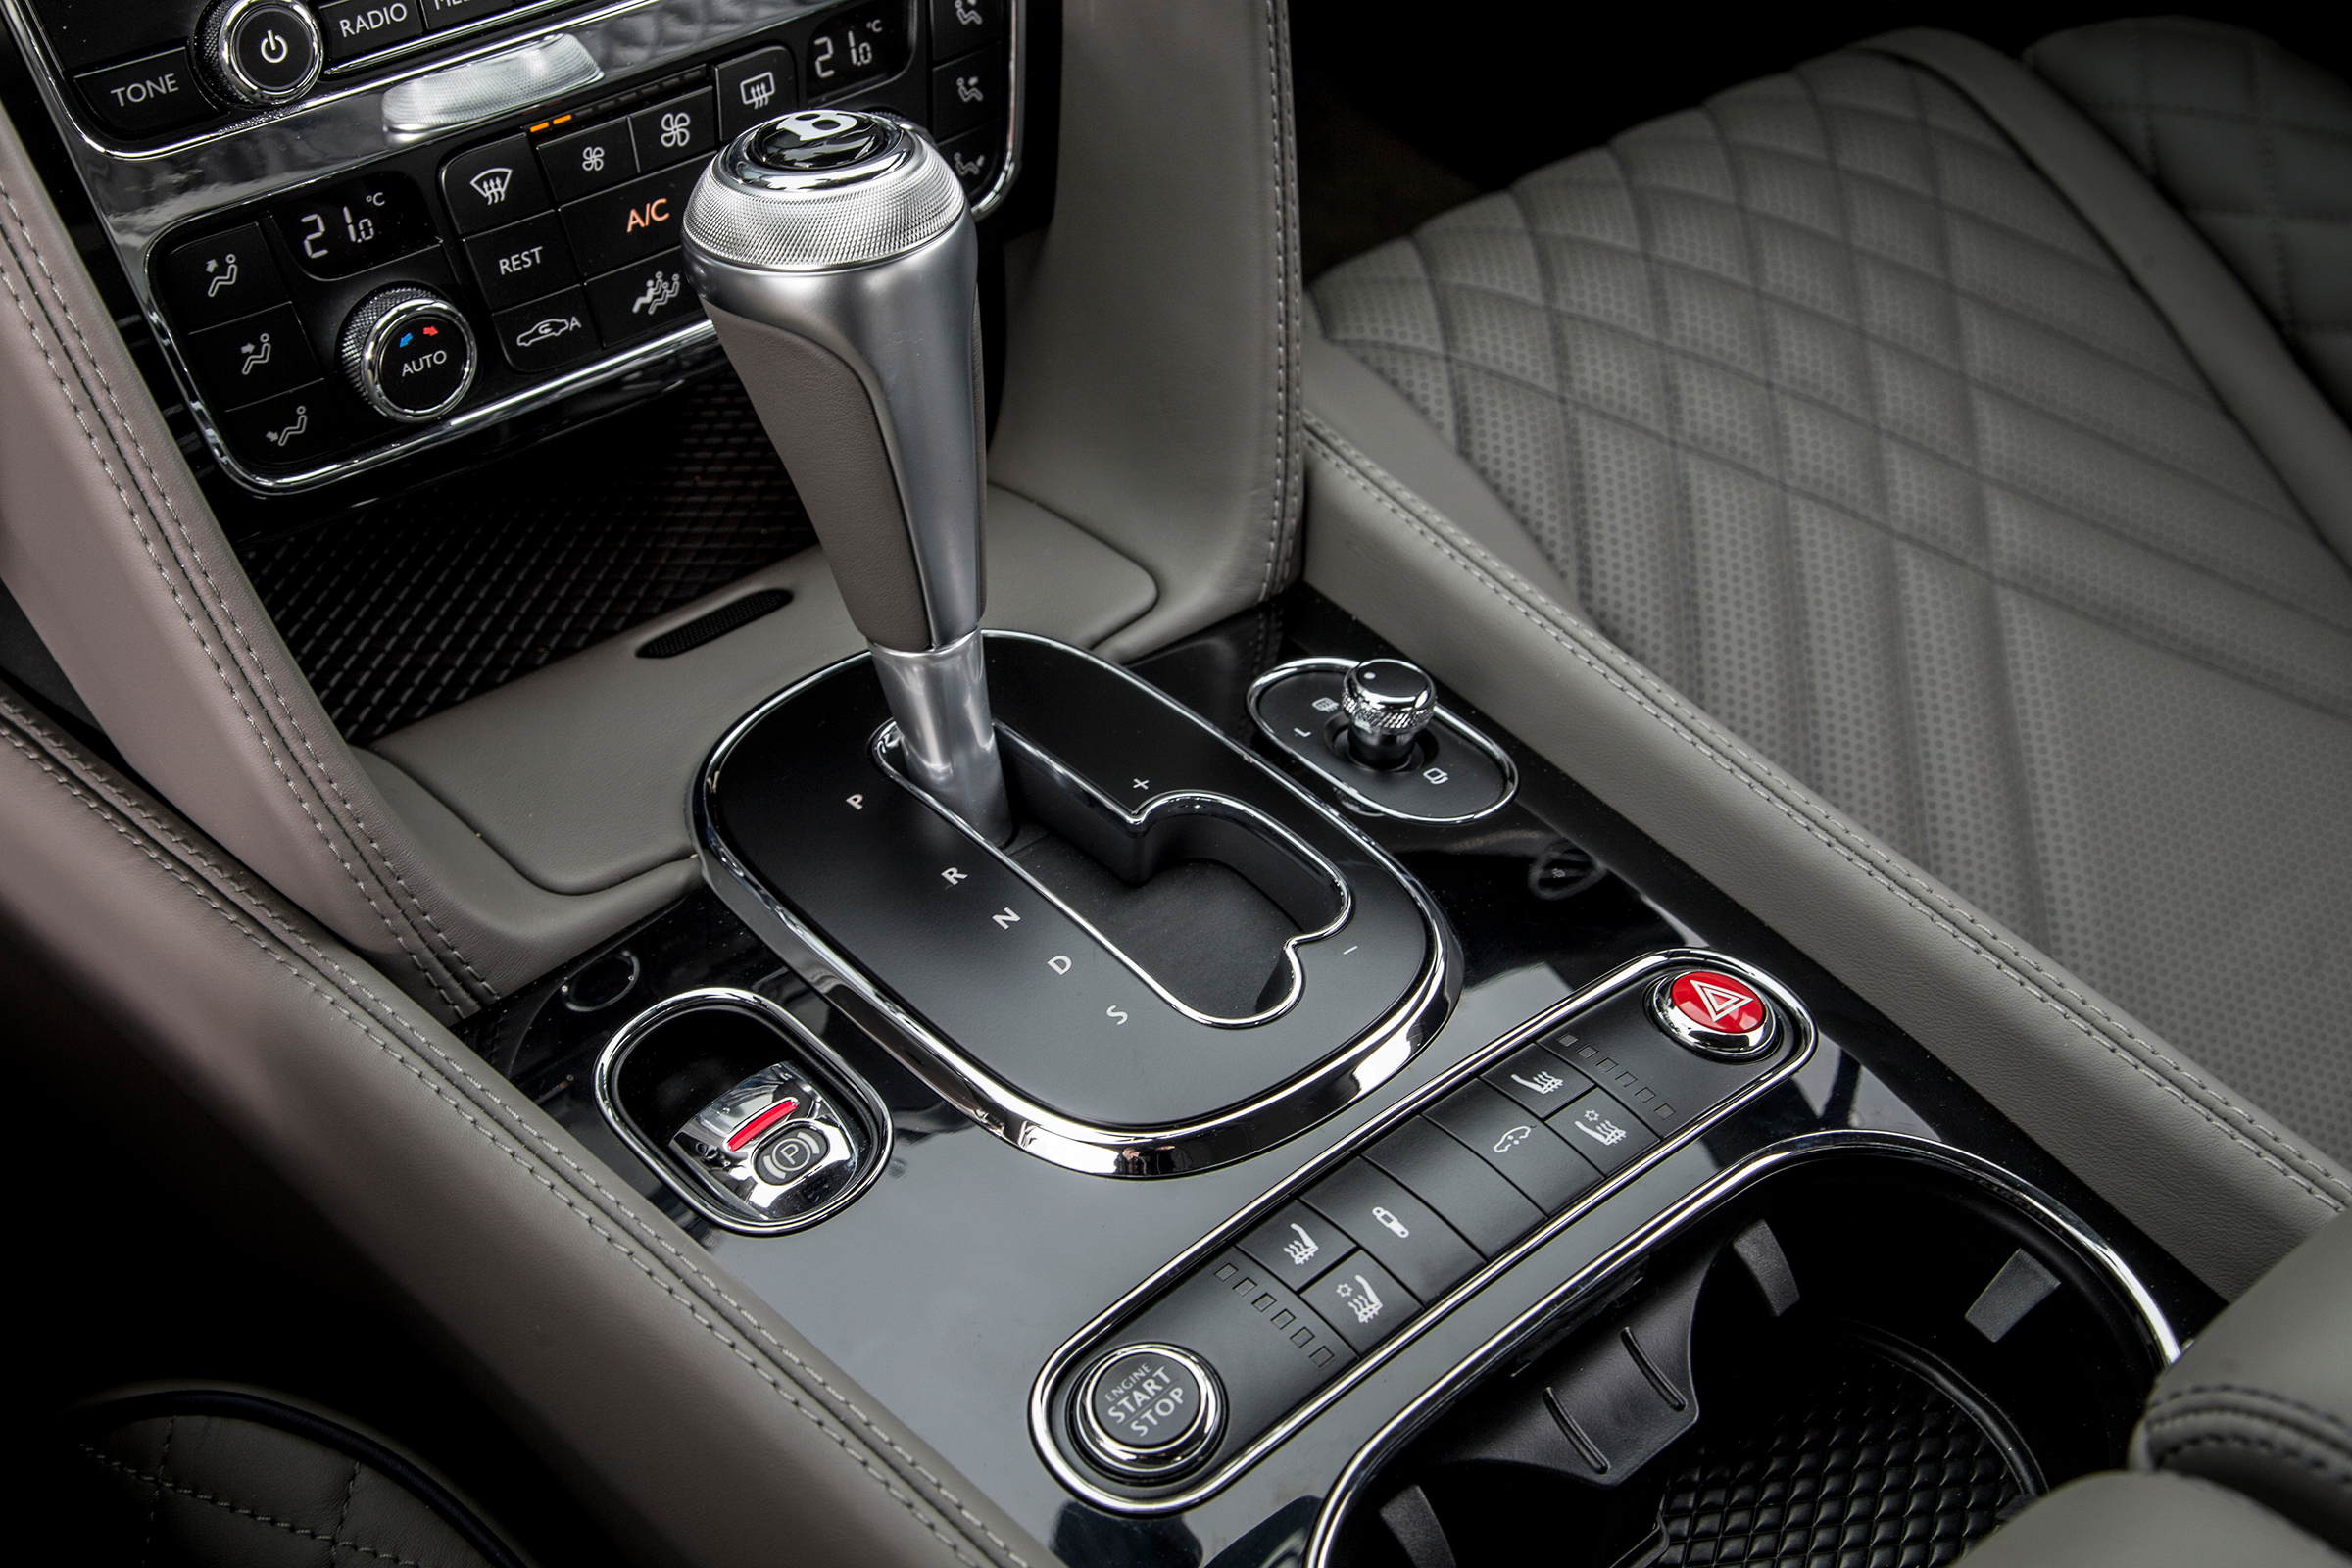 2017 Bentley Continental Supersports Interior View Gear Shift Knob (Photo 29 of 31)